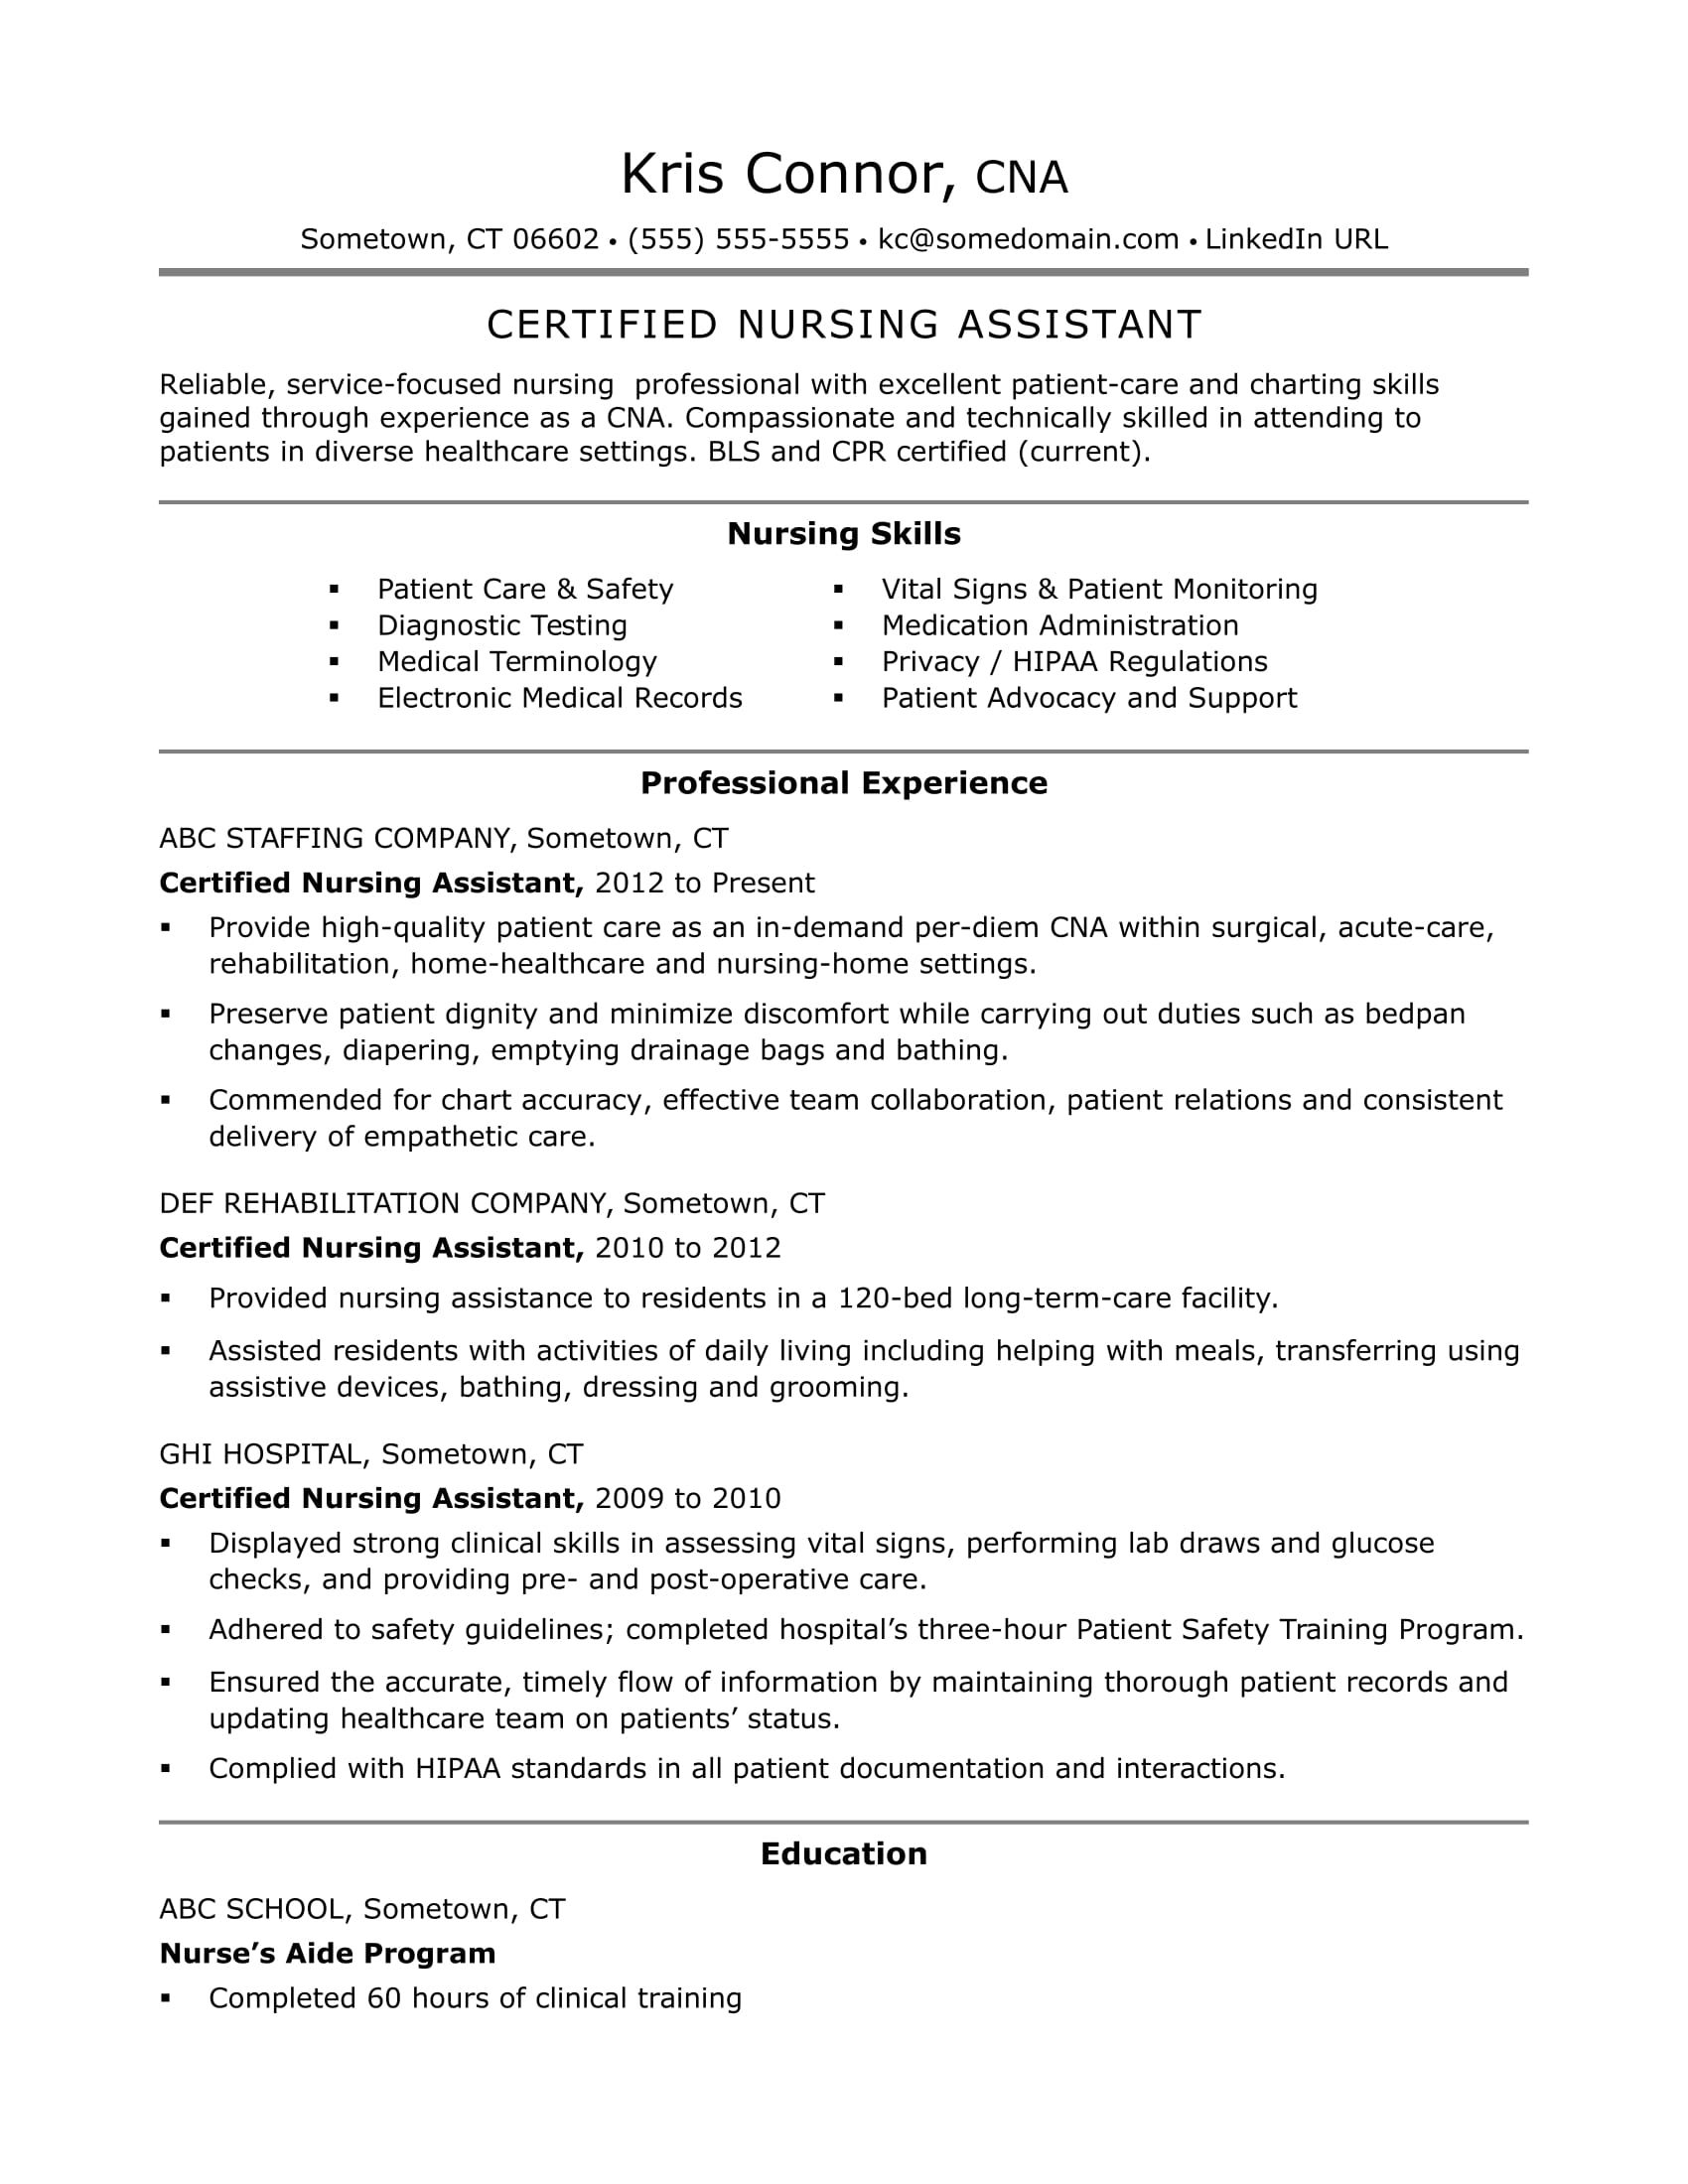 Captivating CNA Resume Example Throughout Cna Job Resume